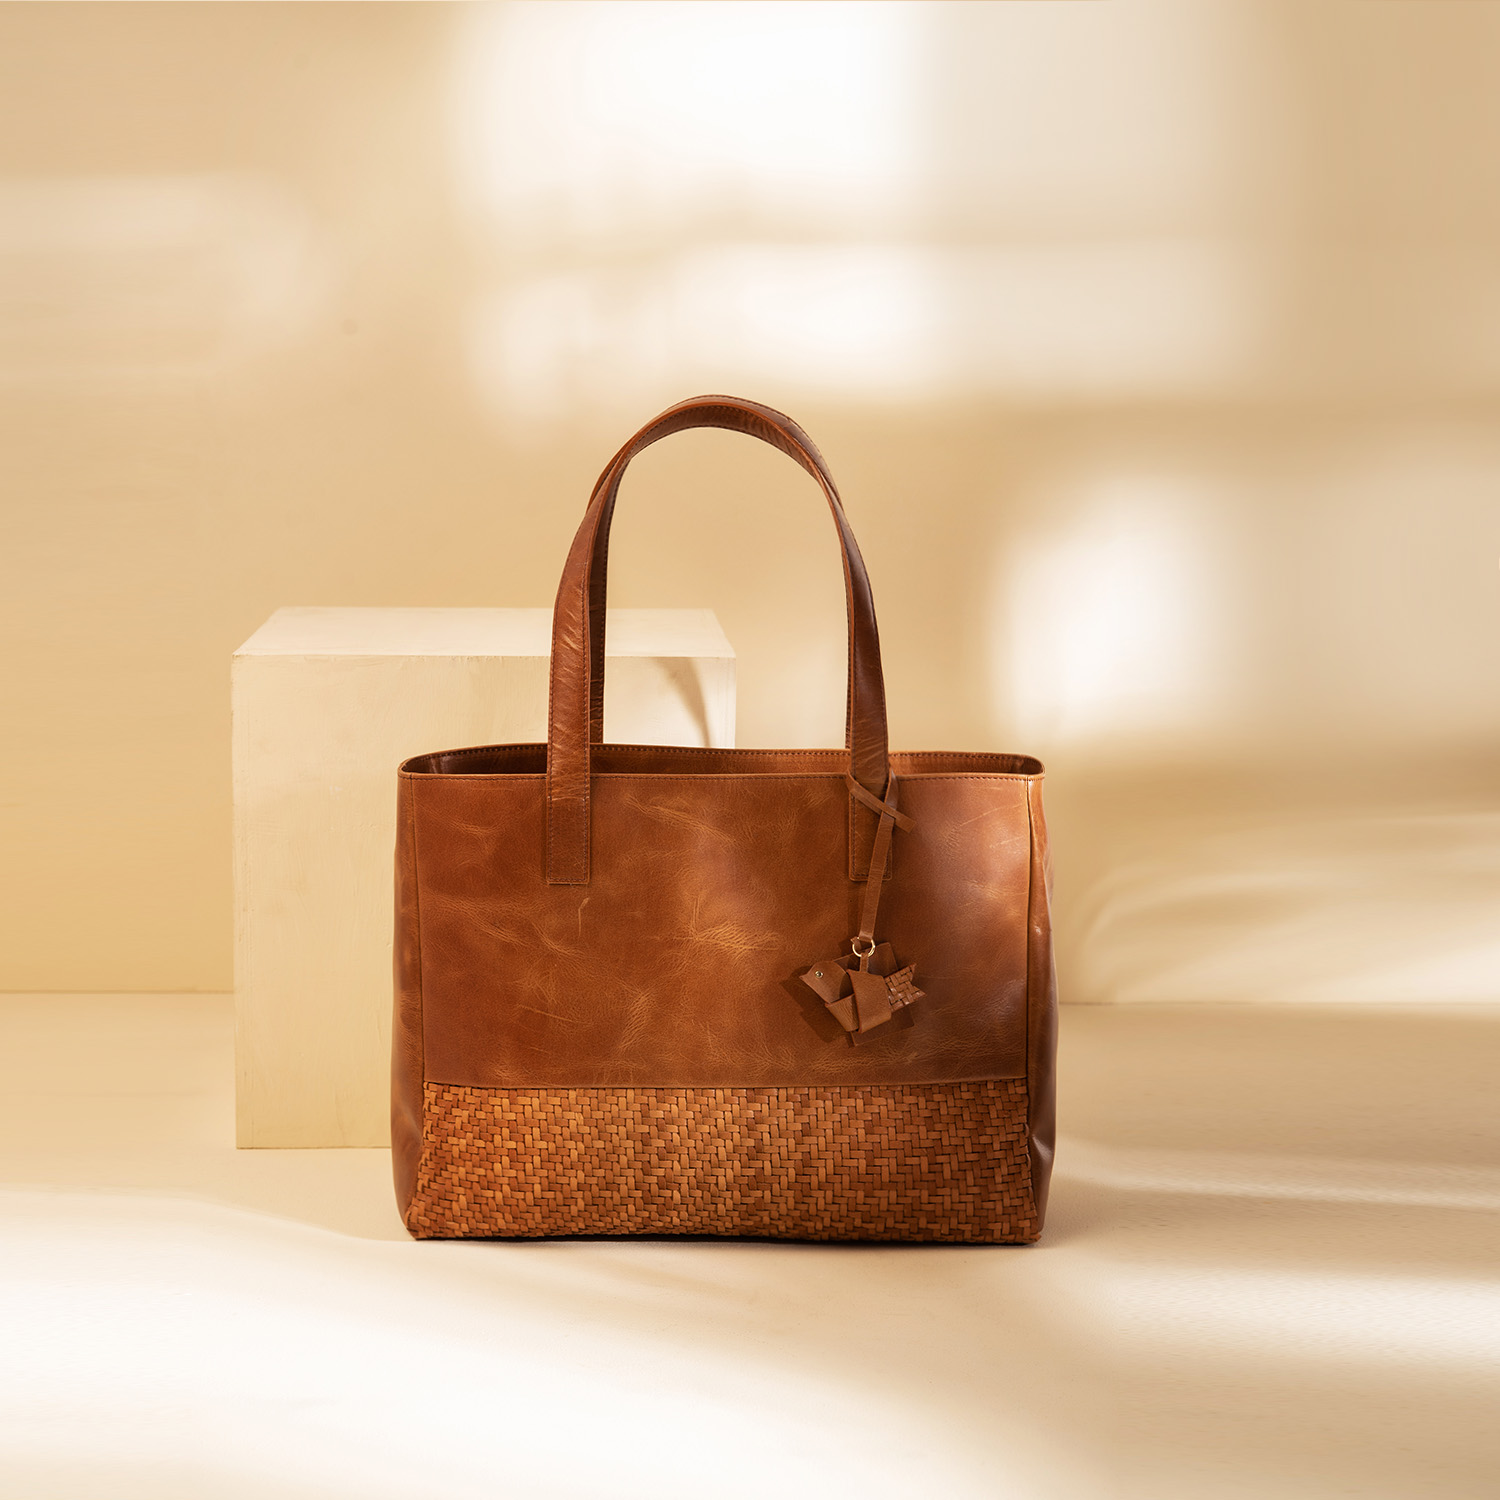 The All-Day Tote - Caramel